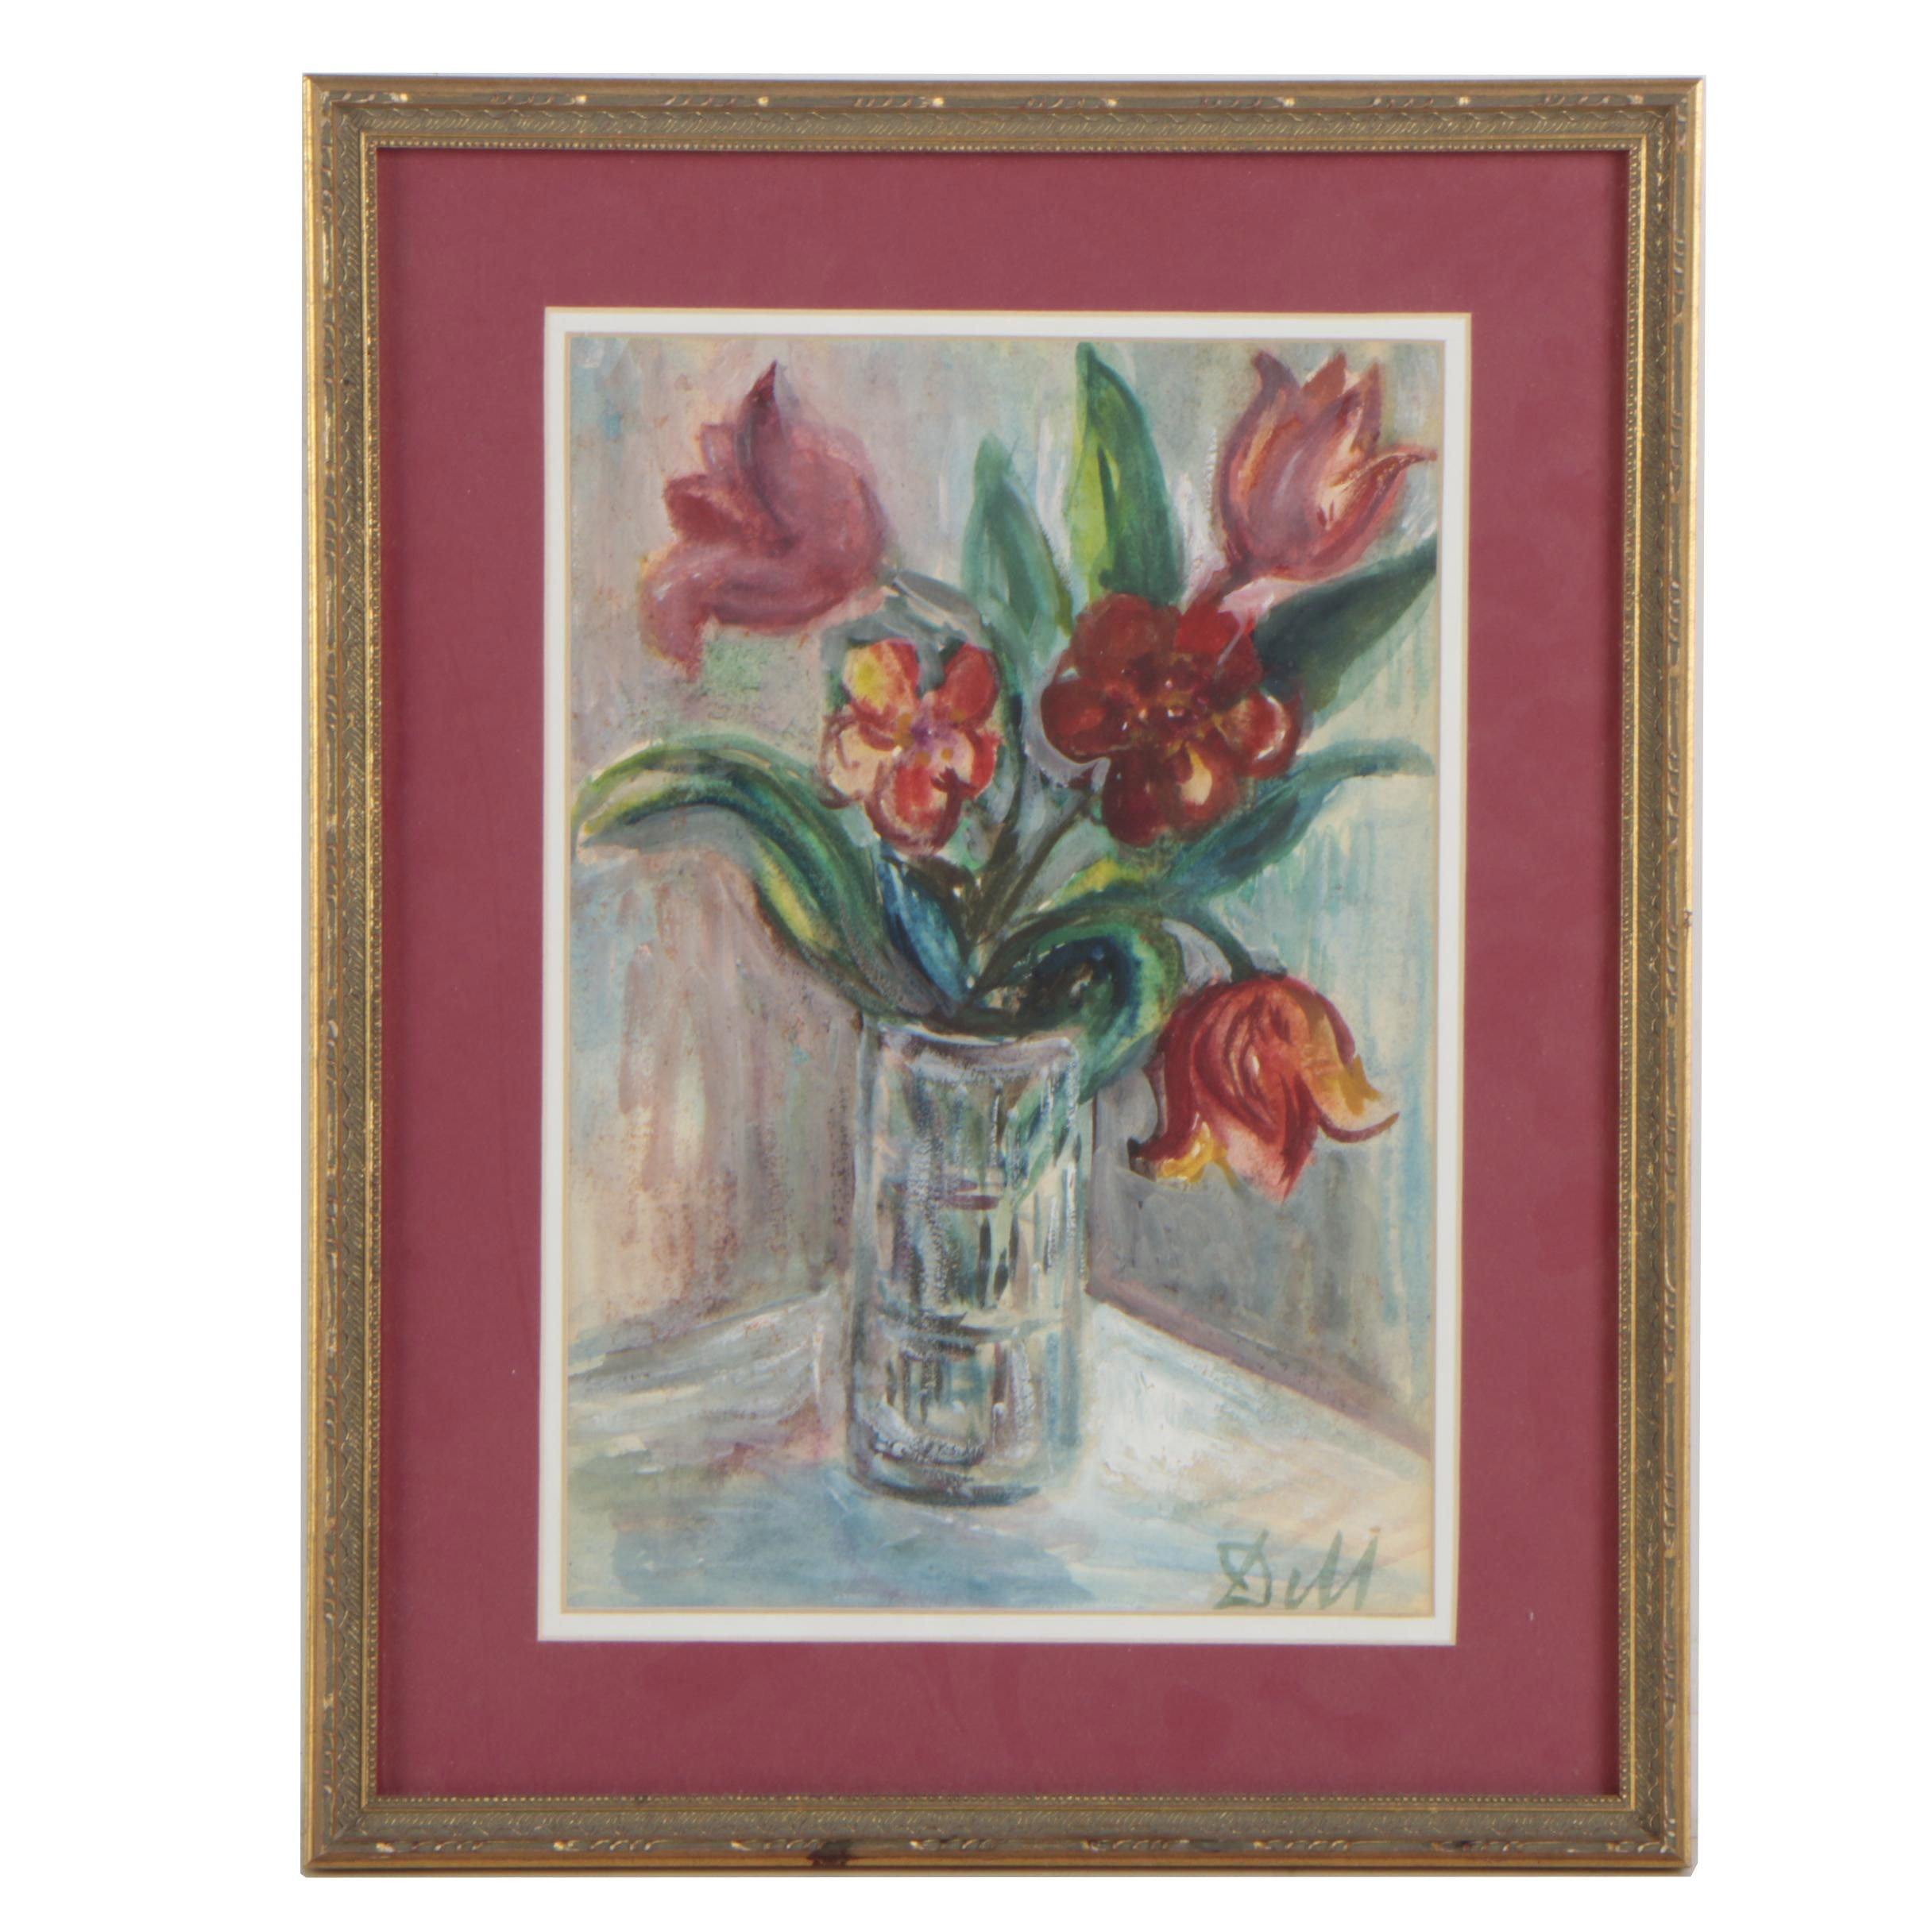 Contemporary Watercolor and Gouache Still Life Painting